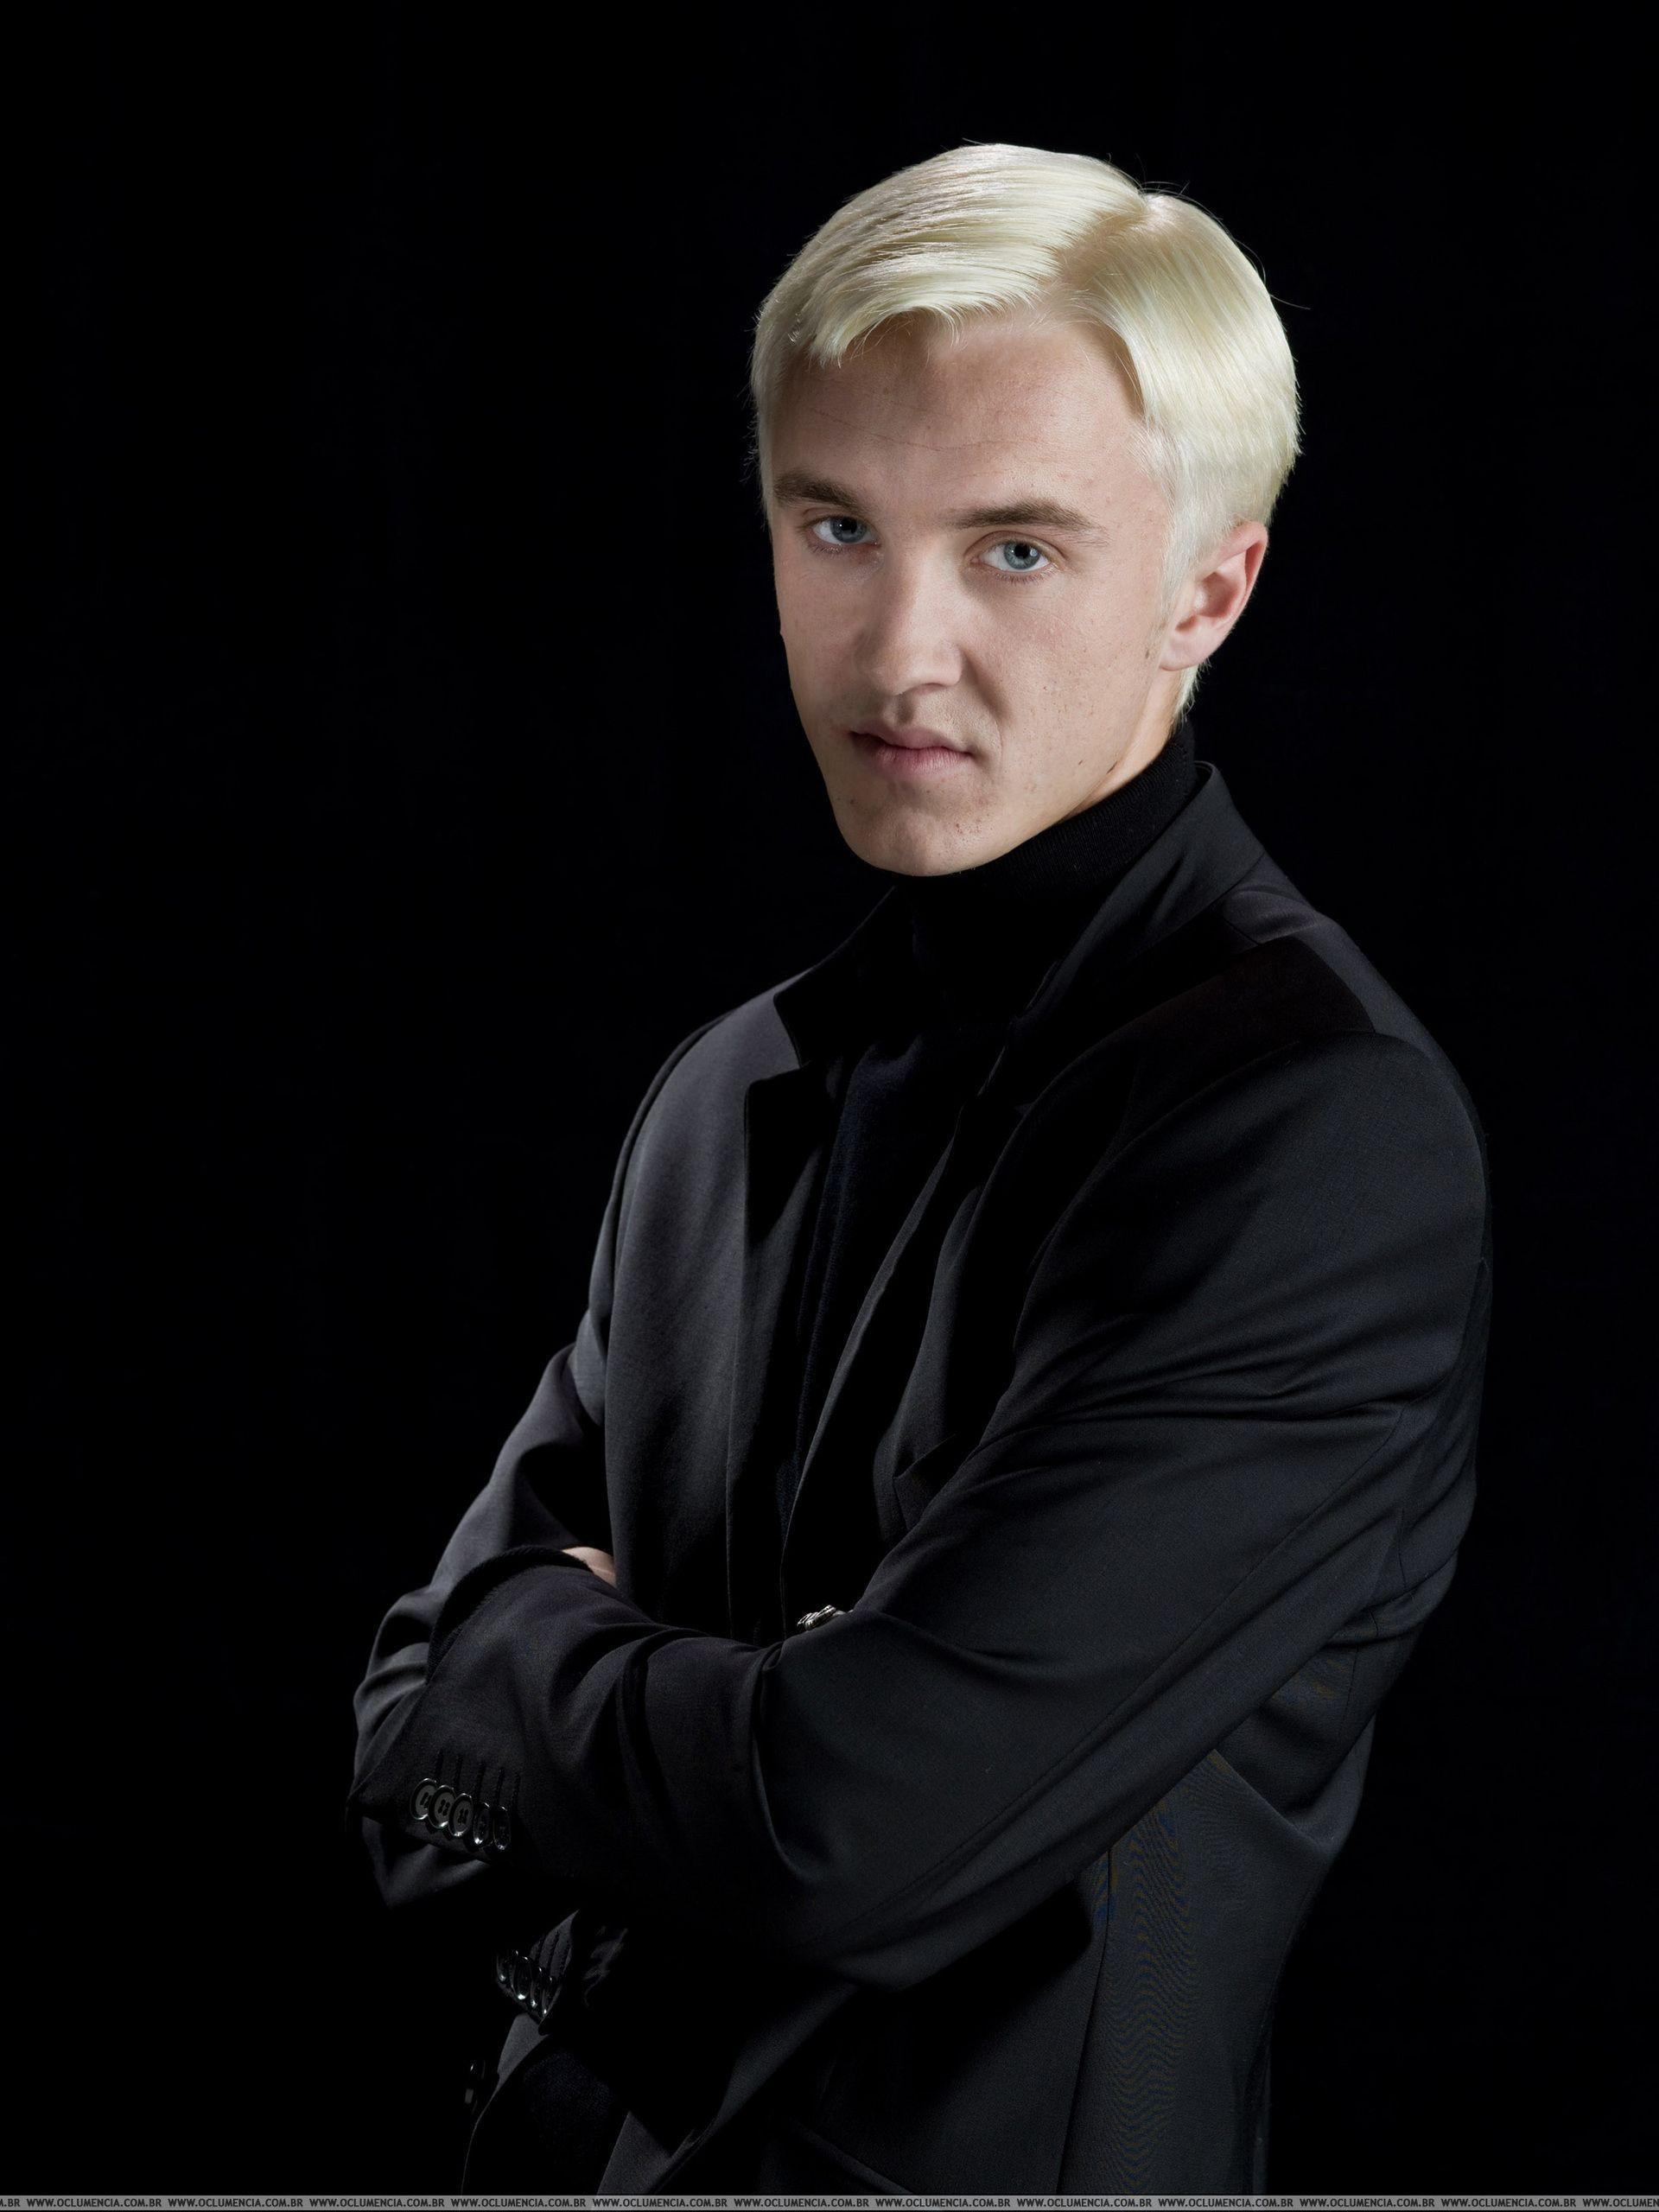 Draco and Slytherin image Draco Malfoy promo HD wallpapers and